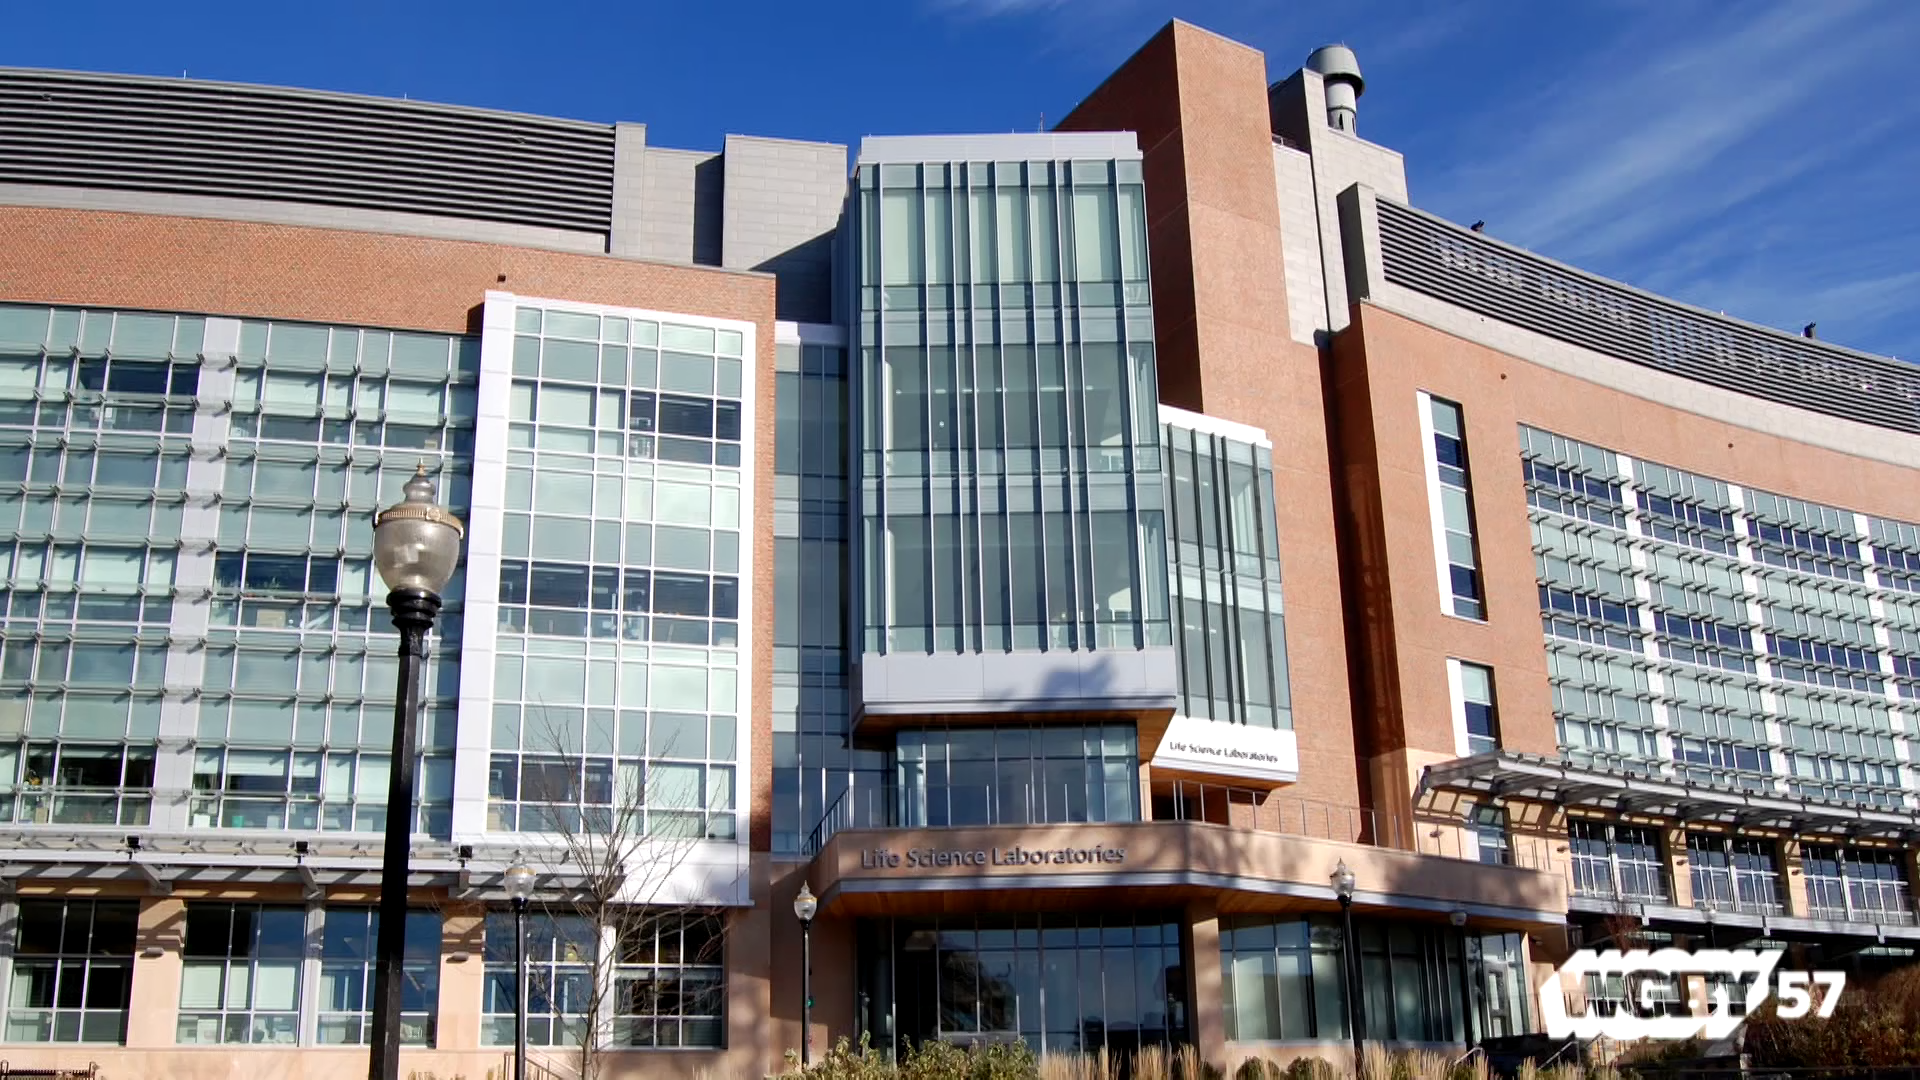 Thanks to a state grant program subsidy, small and mid-sized Massachusetts companies will be able to access the cutting-edge facilities at the UMass Institute for Applied Life Sciences for their own projects.